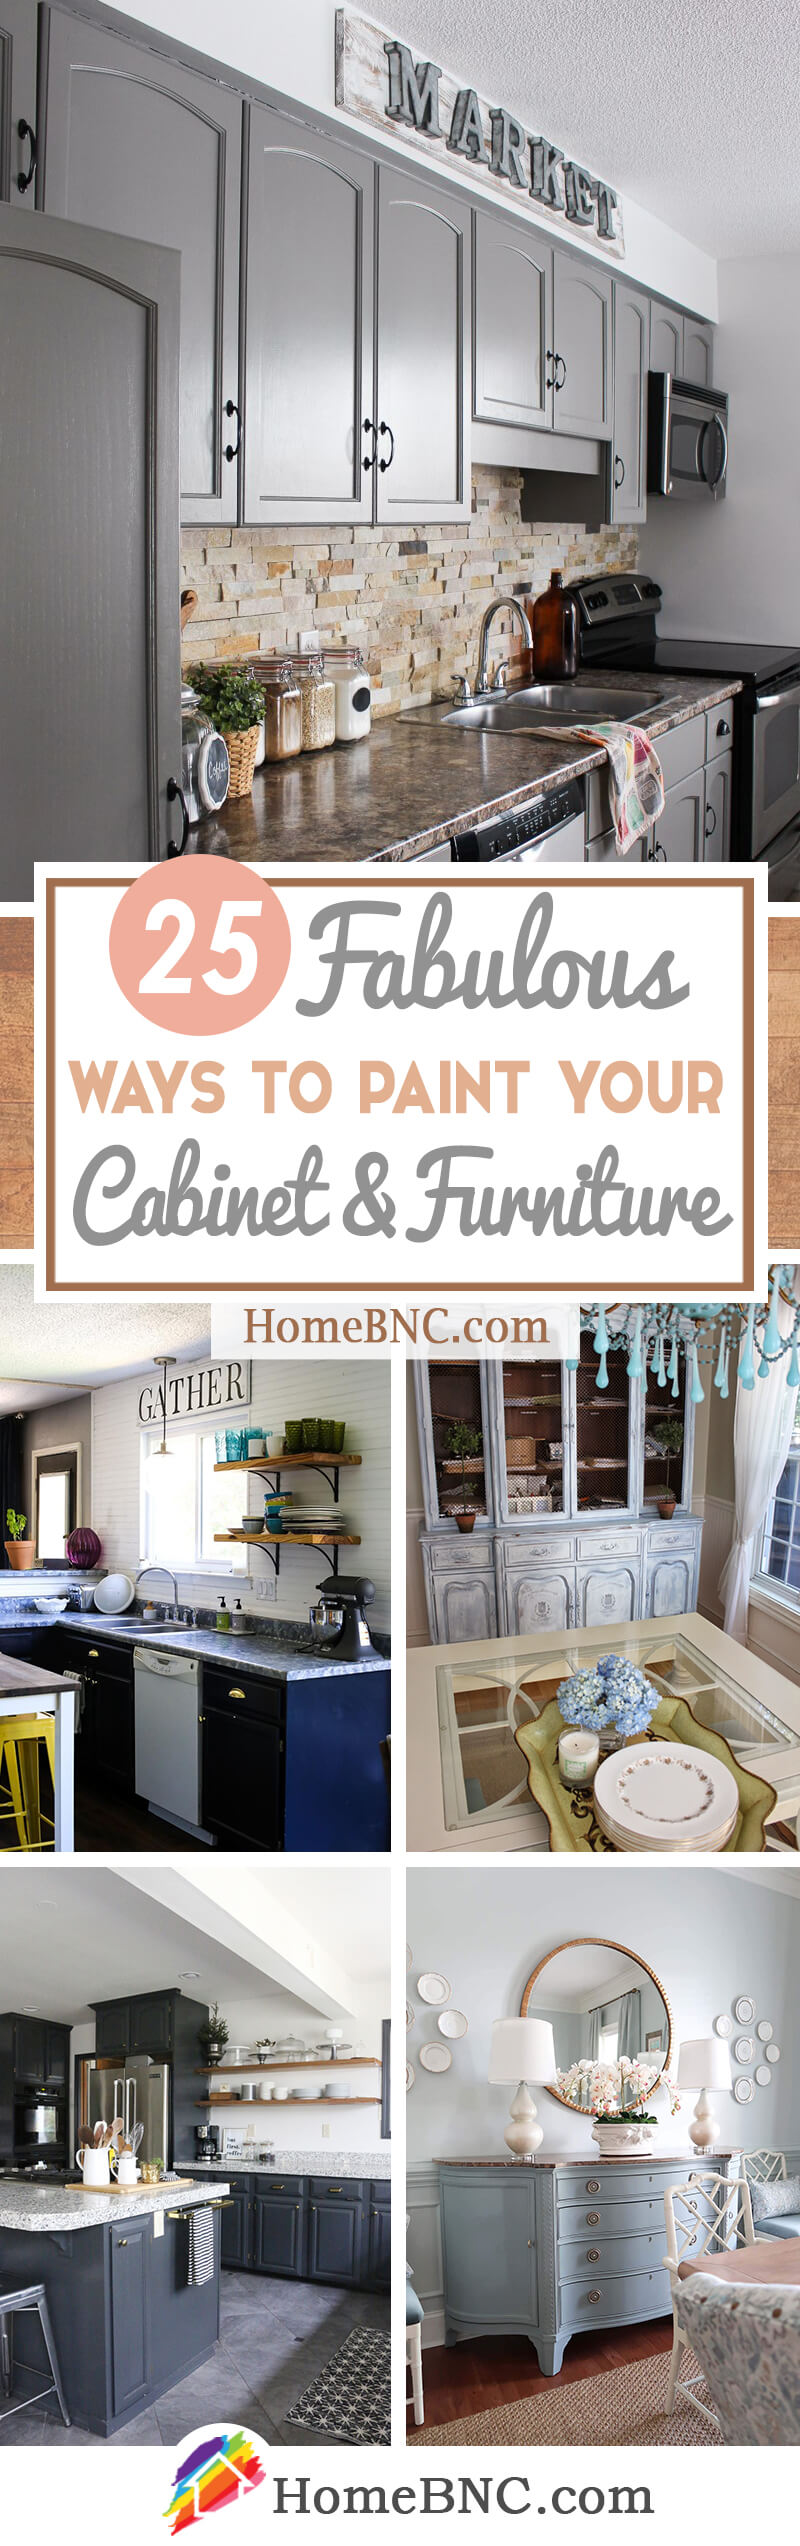 Best Ways to Paint Kitchen Cabinets and Furniture